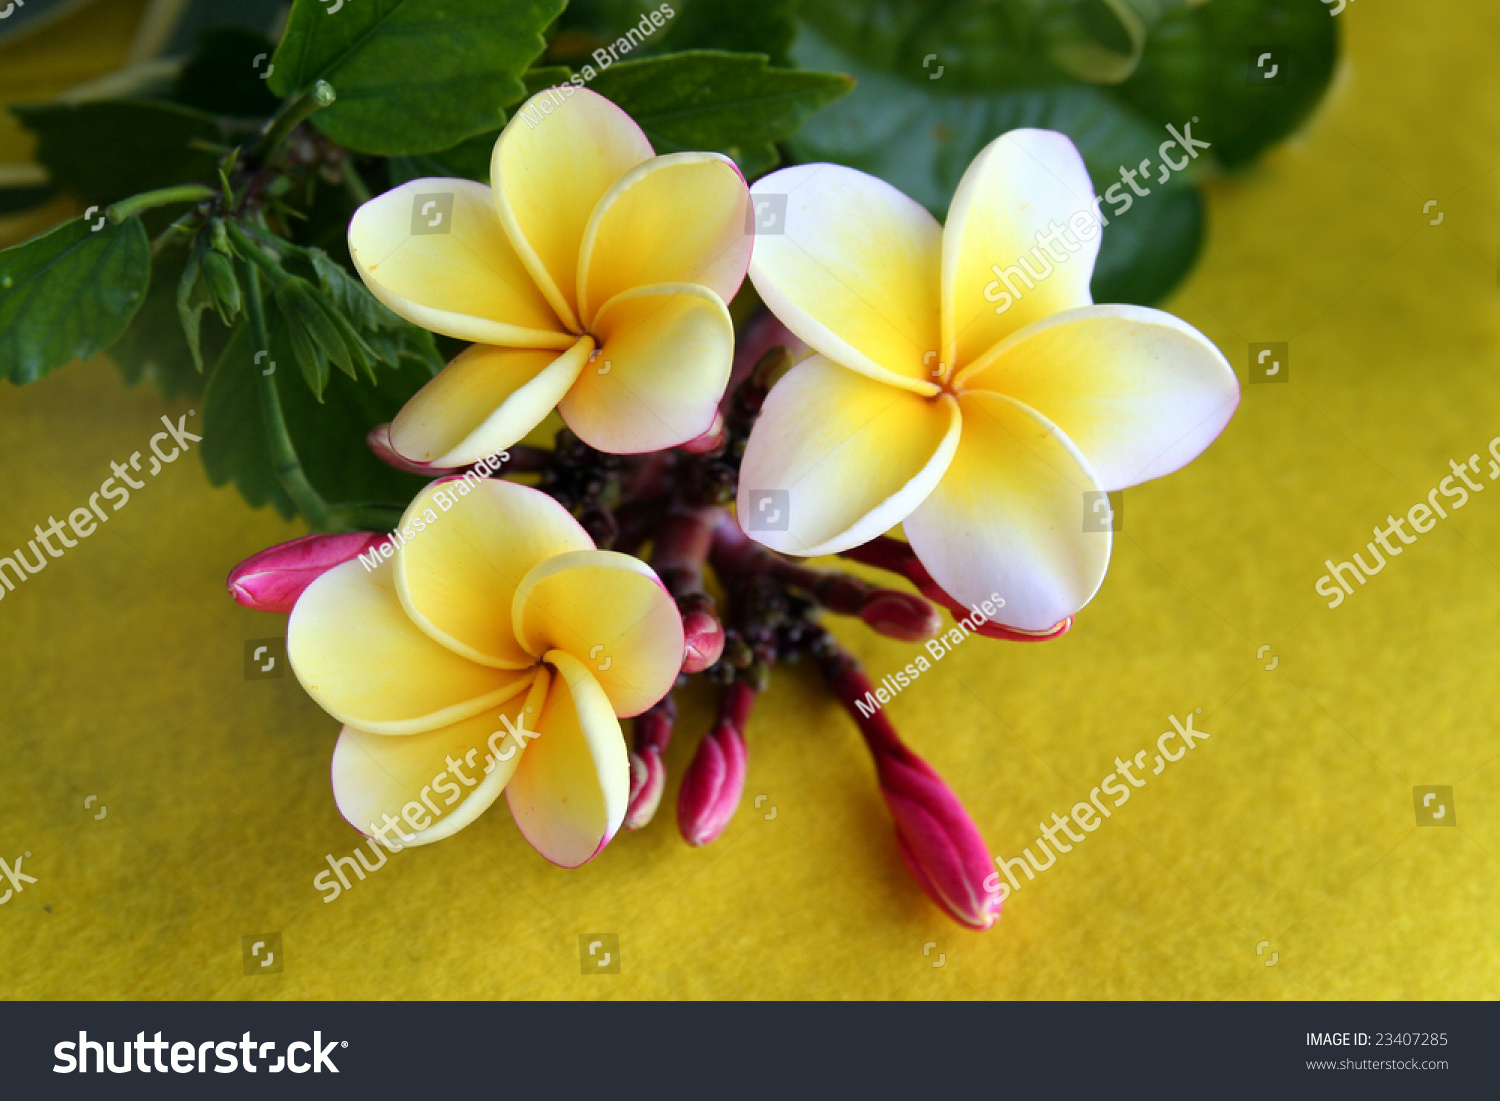 Hawaiian plumeria flowersthese flowers used make stock photo hawaiian plumeria flowers these are the flowers used to make leis izmirmasajfo Choice Image